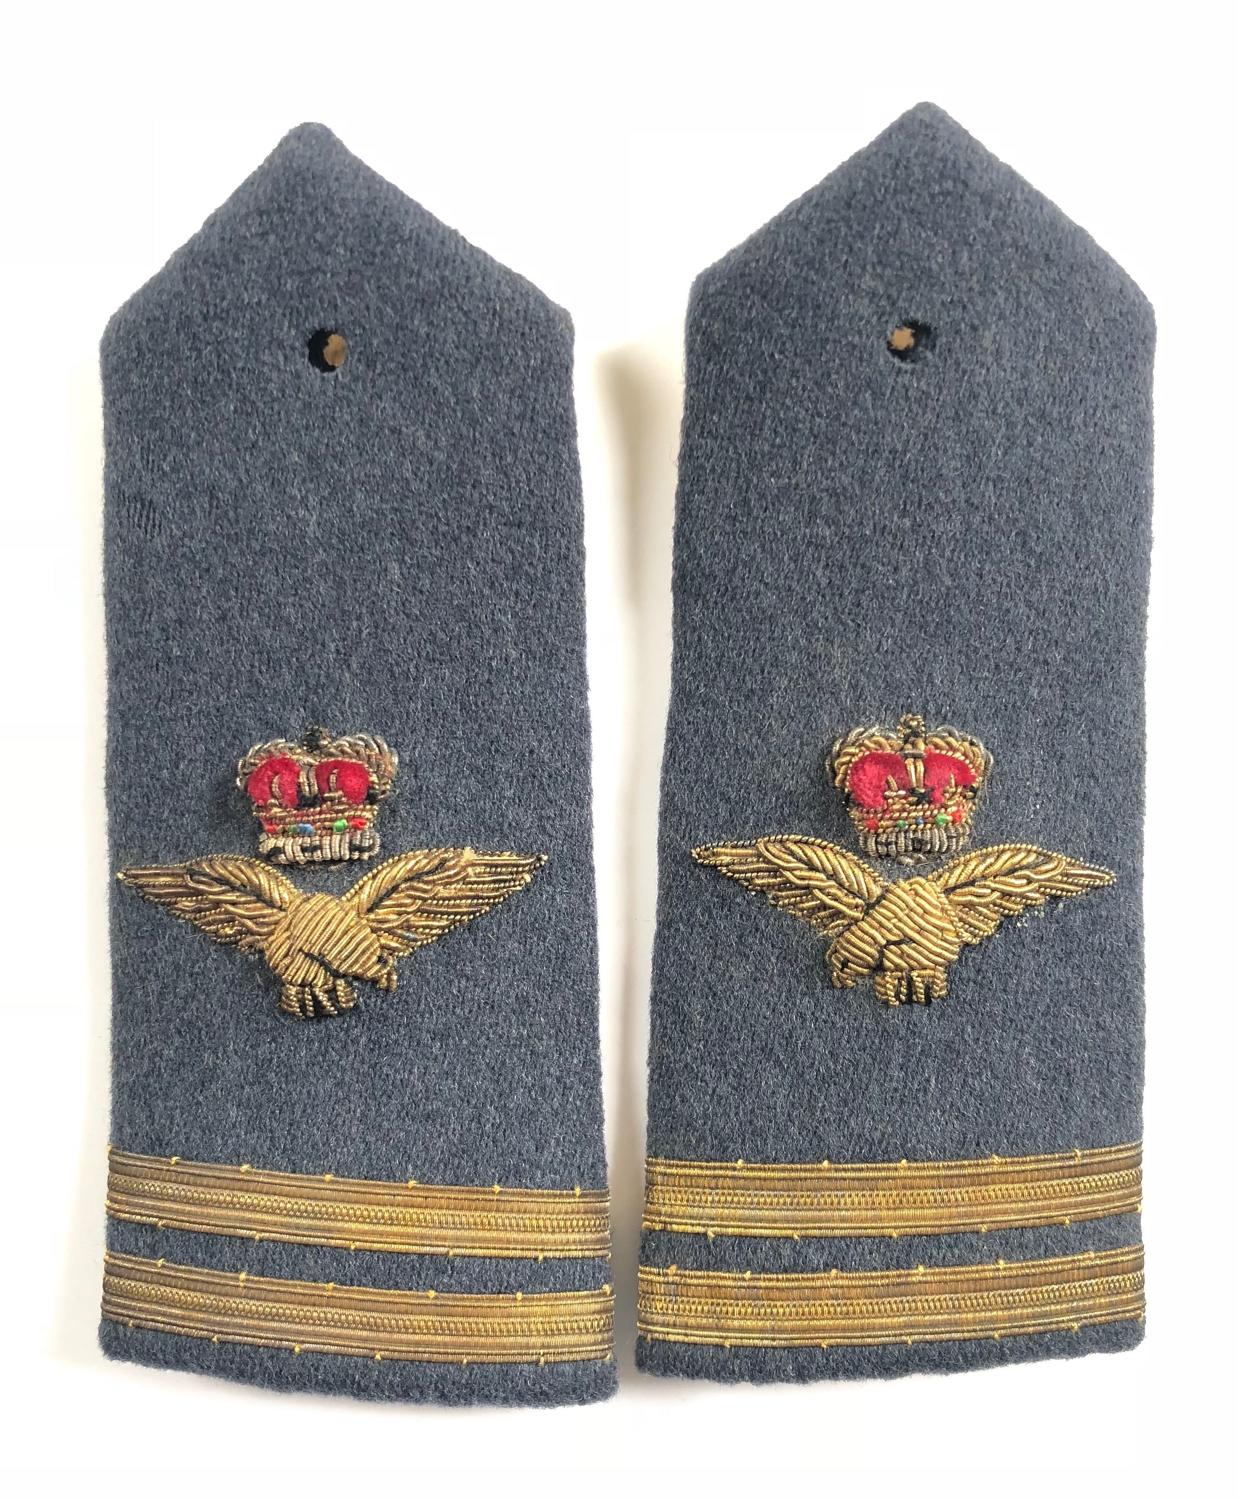 RAF Cold War Period Rank Shoulder Rank.